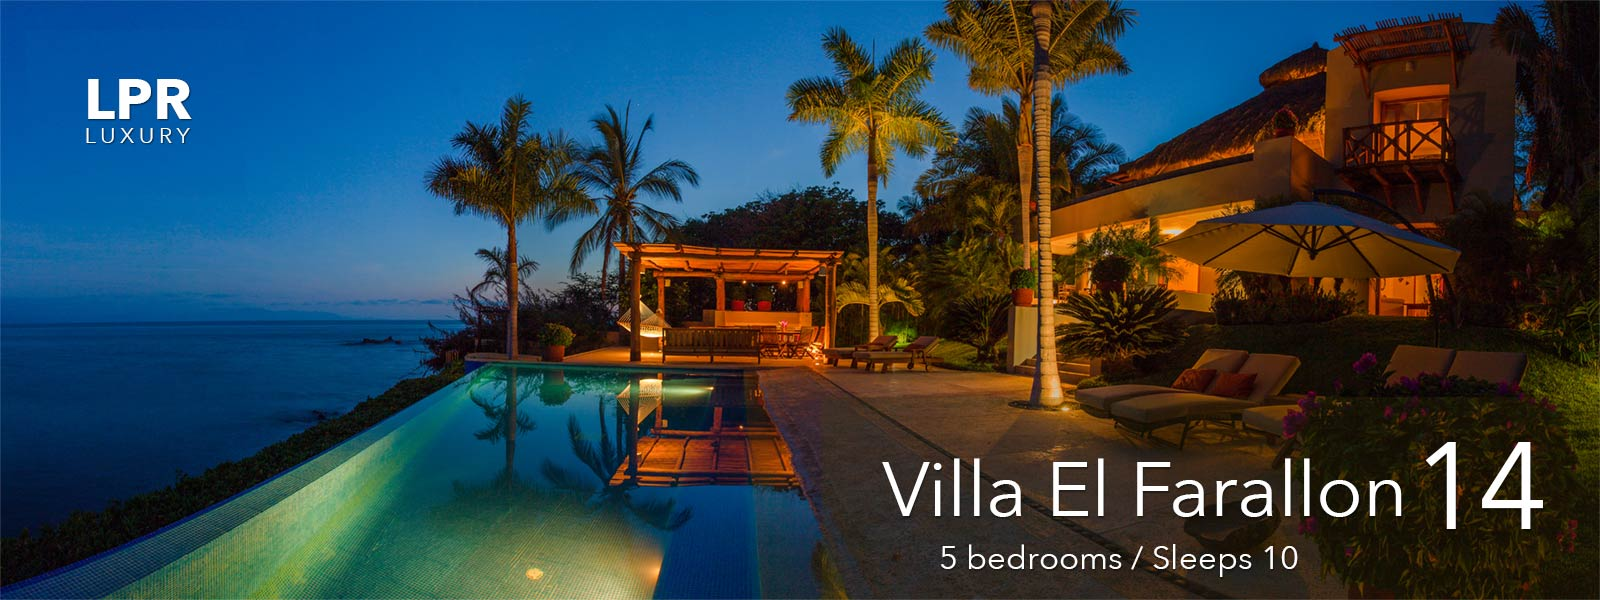 Villa El Farallon 14 - Luxury Punta de Mita Resort Vacation Rentals Villas, Mexico